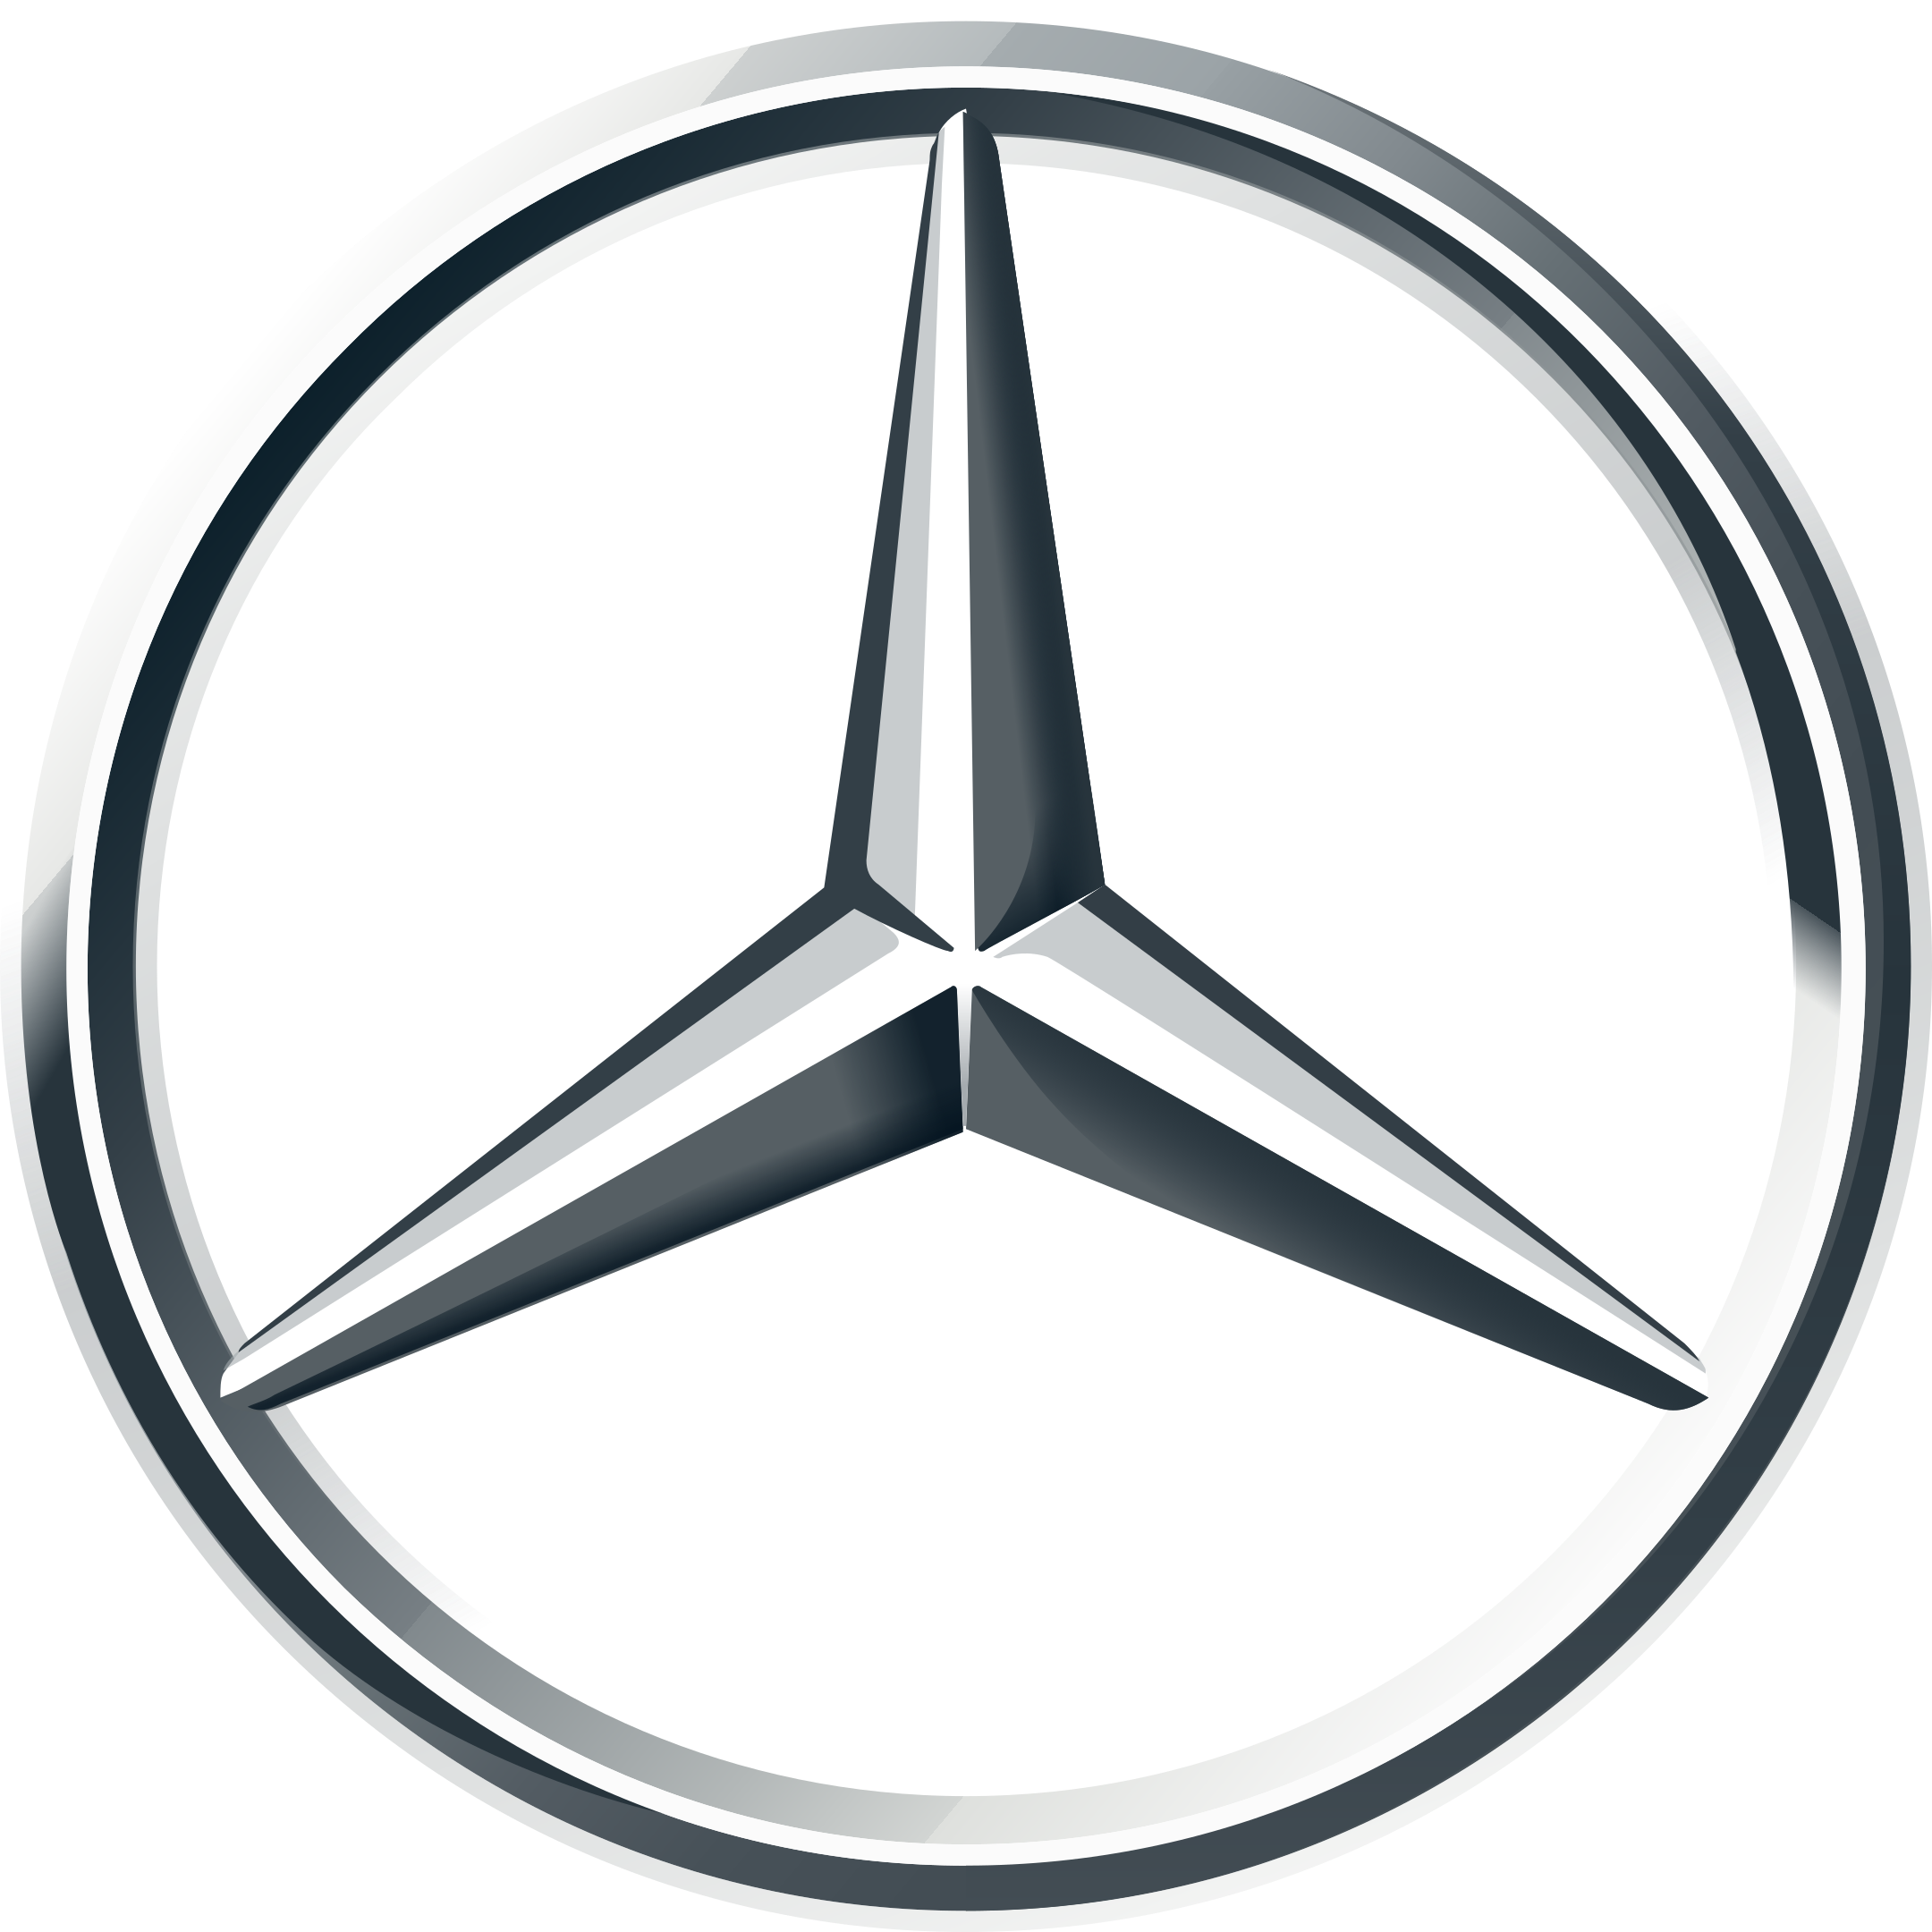 mercedes benz logo 1 1 - Mercedes Benz Logo